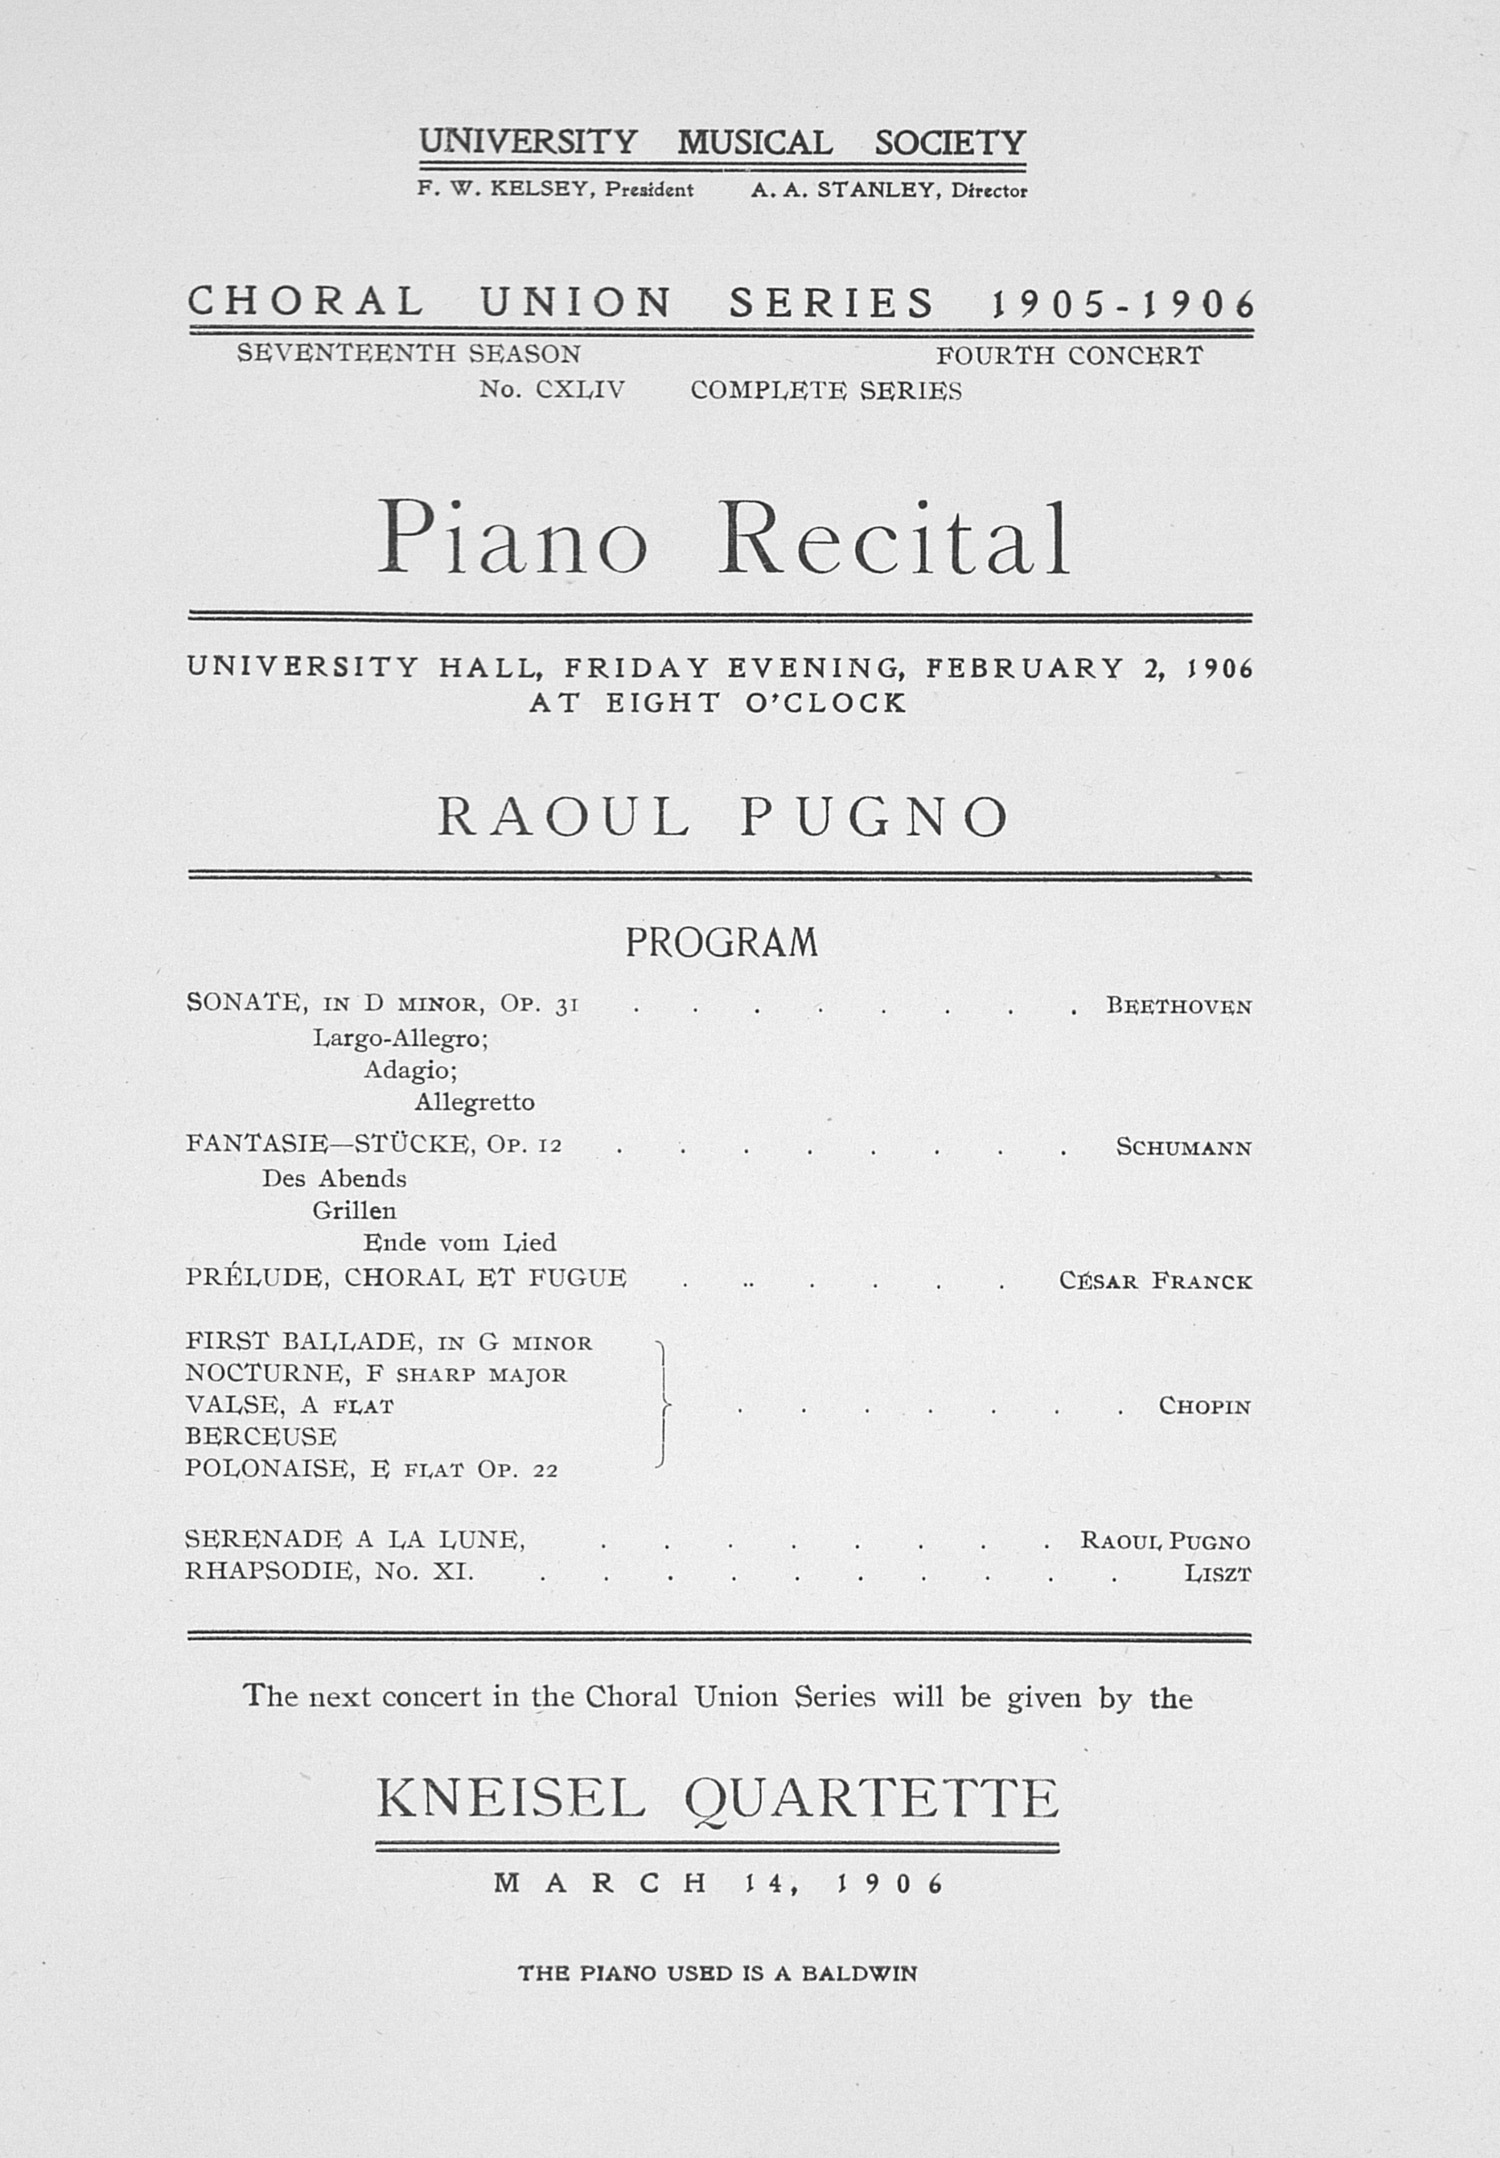 UMS Concert Program, February 2, 1906: Choral Union Series -- Piano Recital image